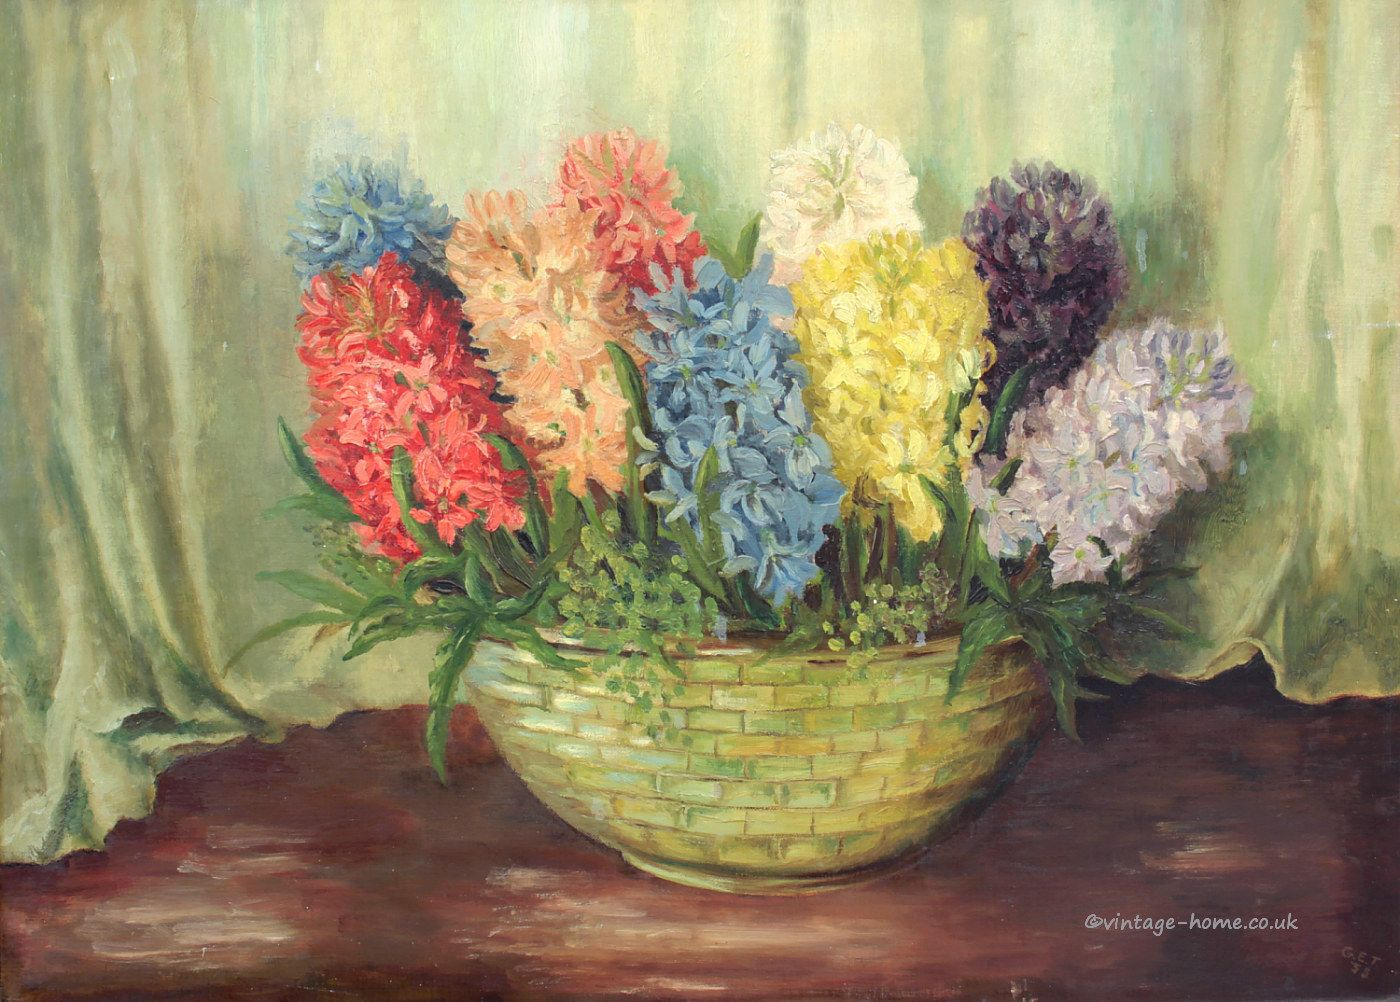 Vintage Home Shop Pretty 1950s Oil Painting Of A Bowl Of Hyacinths